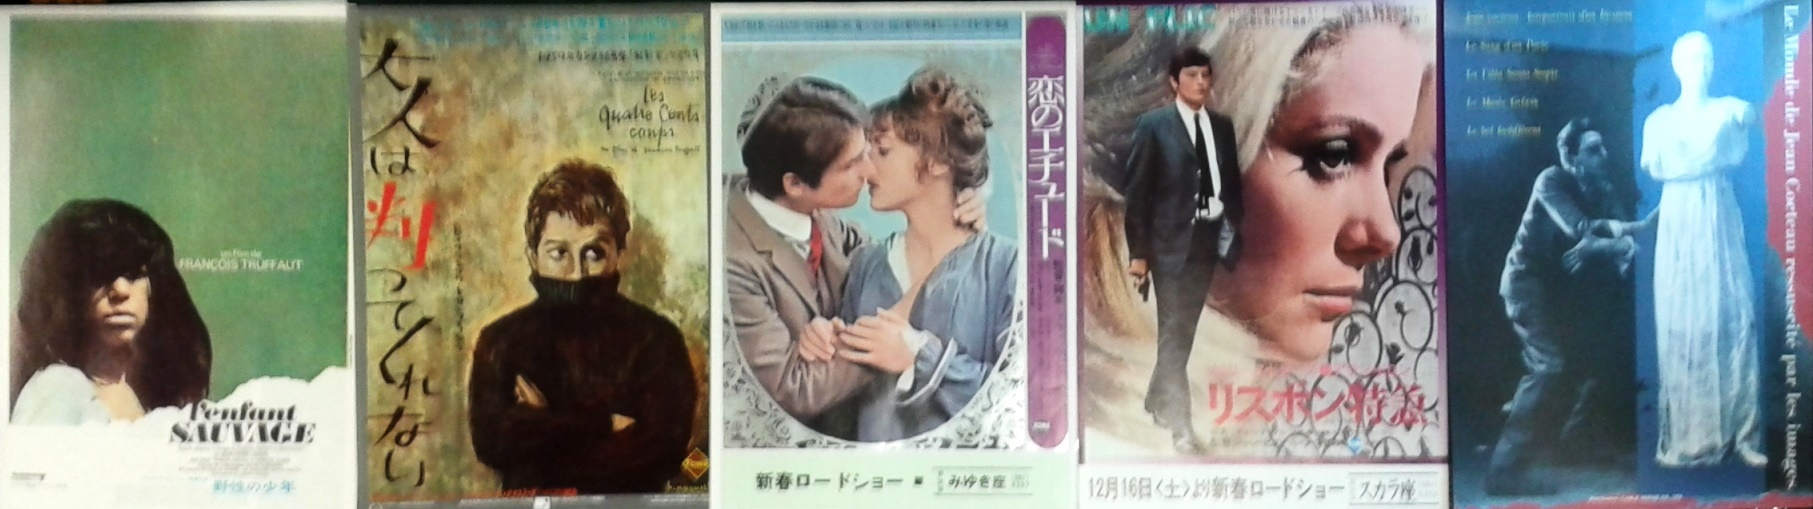 Imported film fliers from the 1970's through the 1980's. Makino Collection, Columbia University in the City of New York